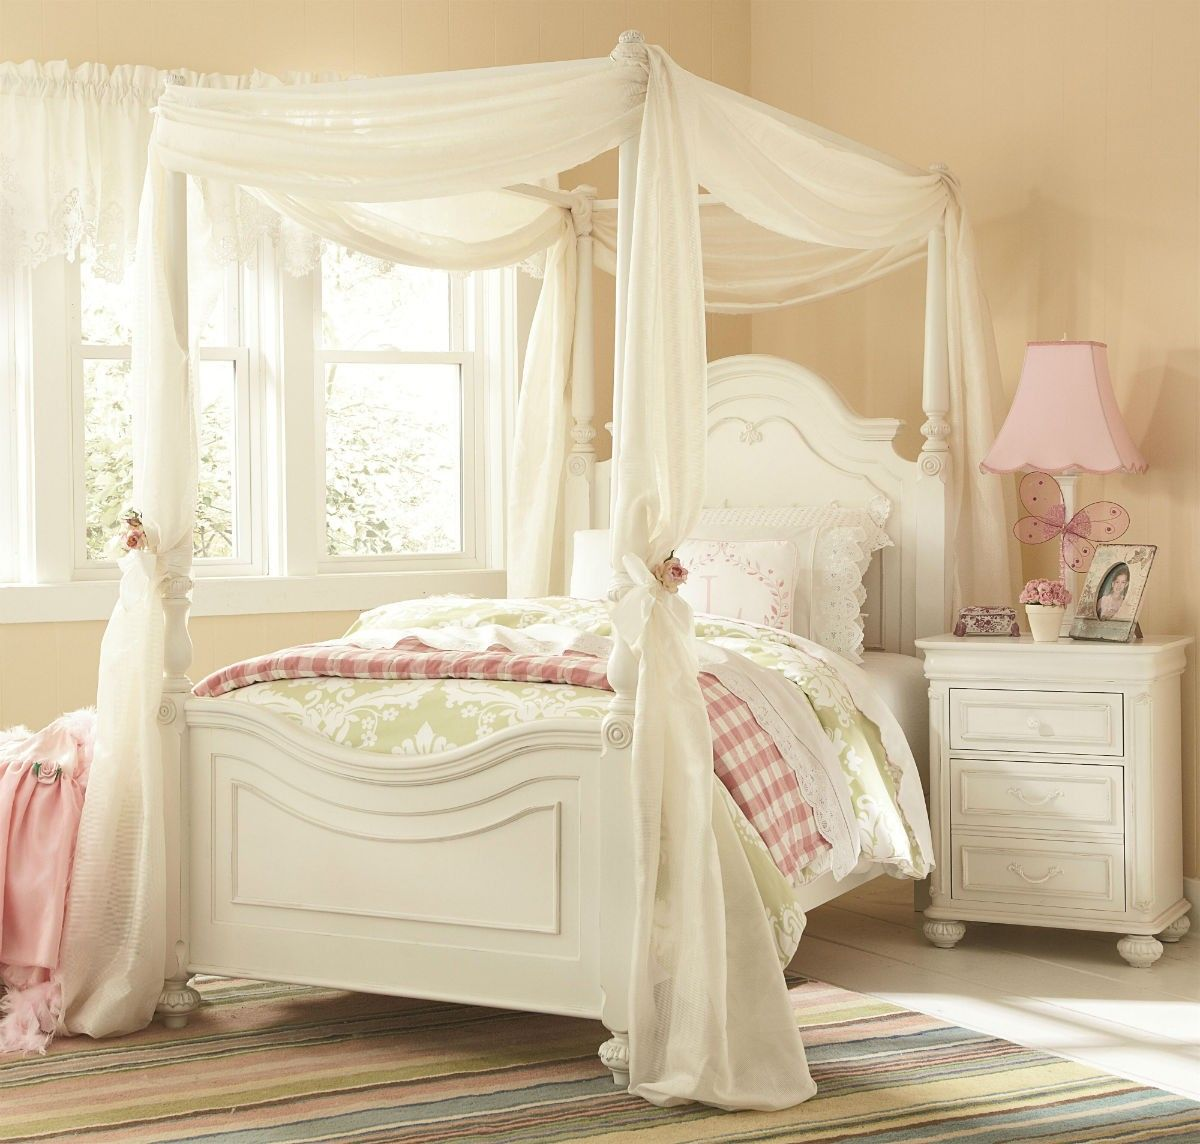 32 Dreamy Bedroom Designs For Your Little Princess: 19 Fabulous Canopy Bed Designs For Your Little Princess